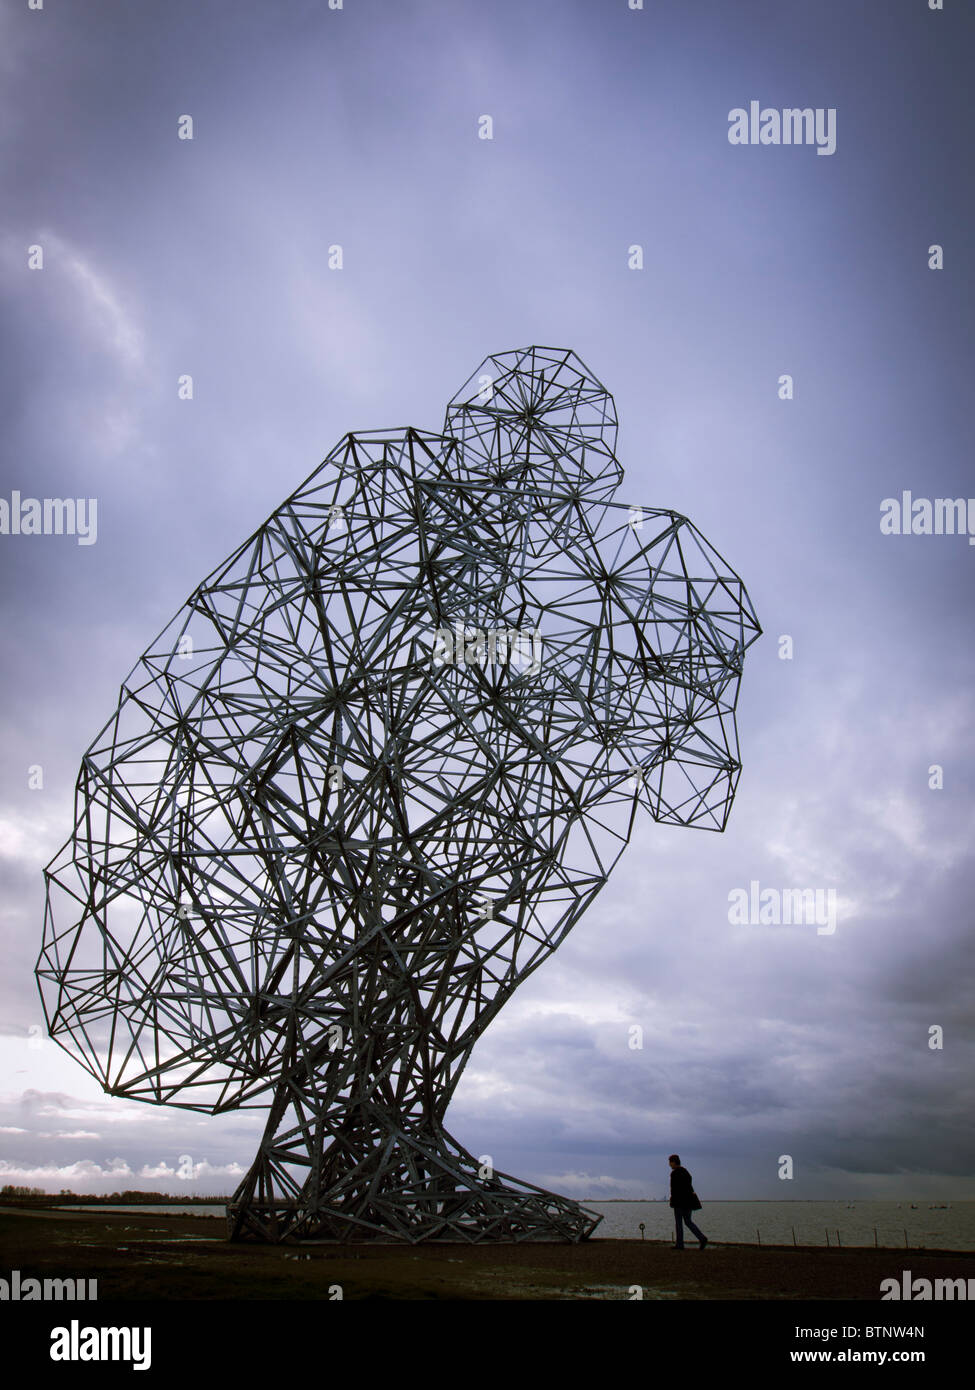 Antony Gormley's new sculpture called Exposure on sea dyke at Lelystad in The Netherlands - Stock Image